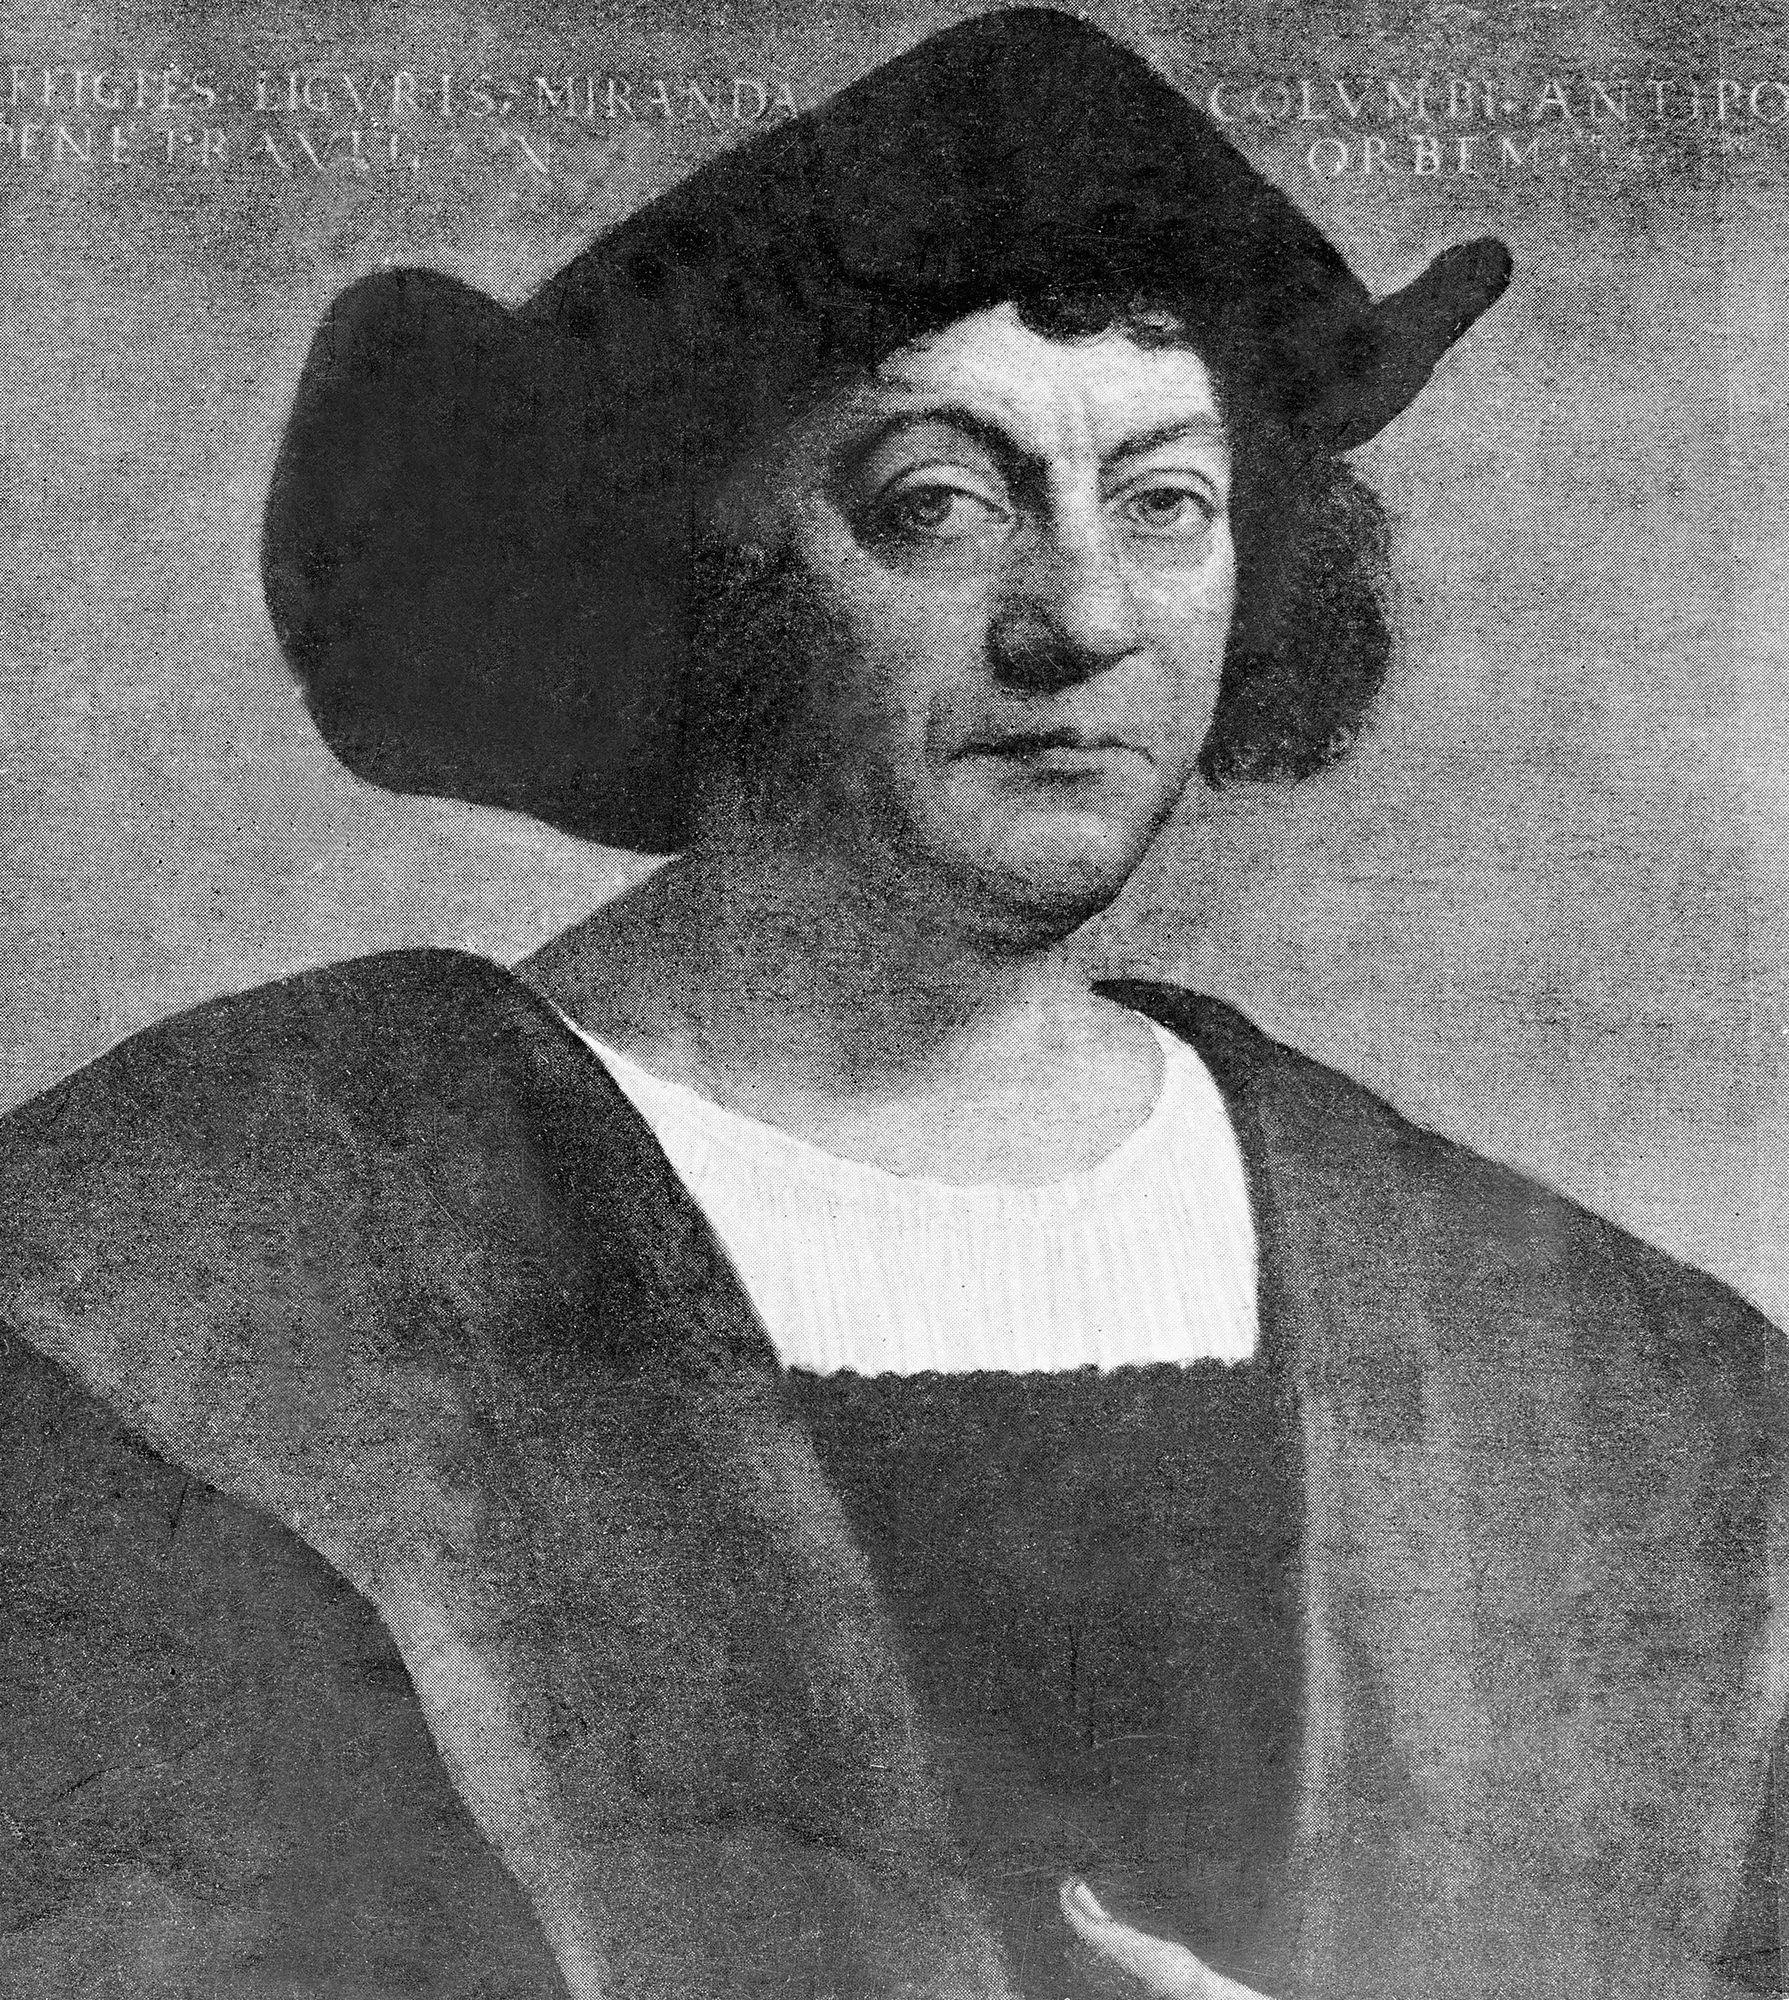 Columbus Day Replaced With Indigenous Peoples Day In